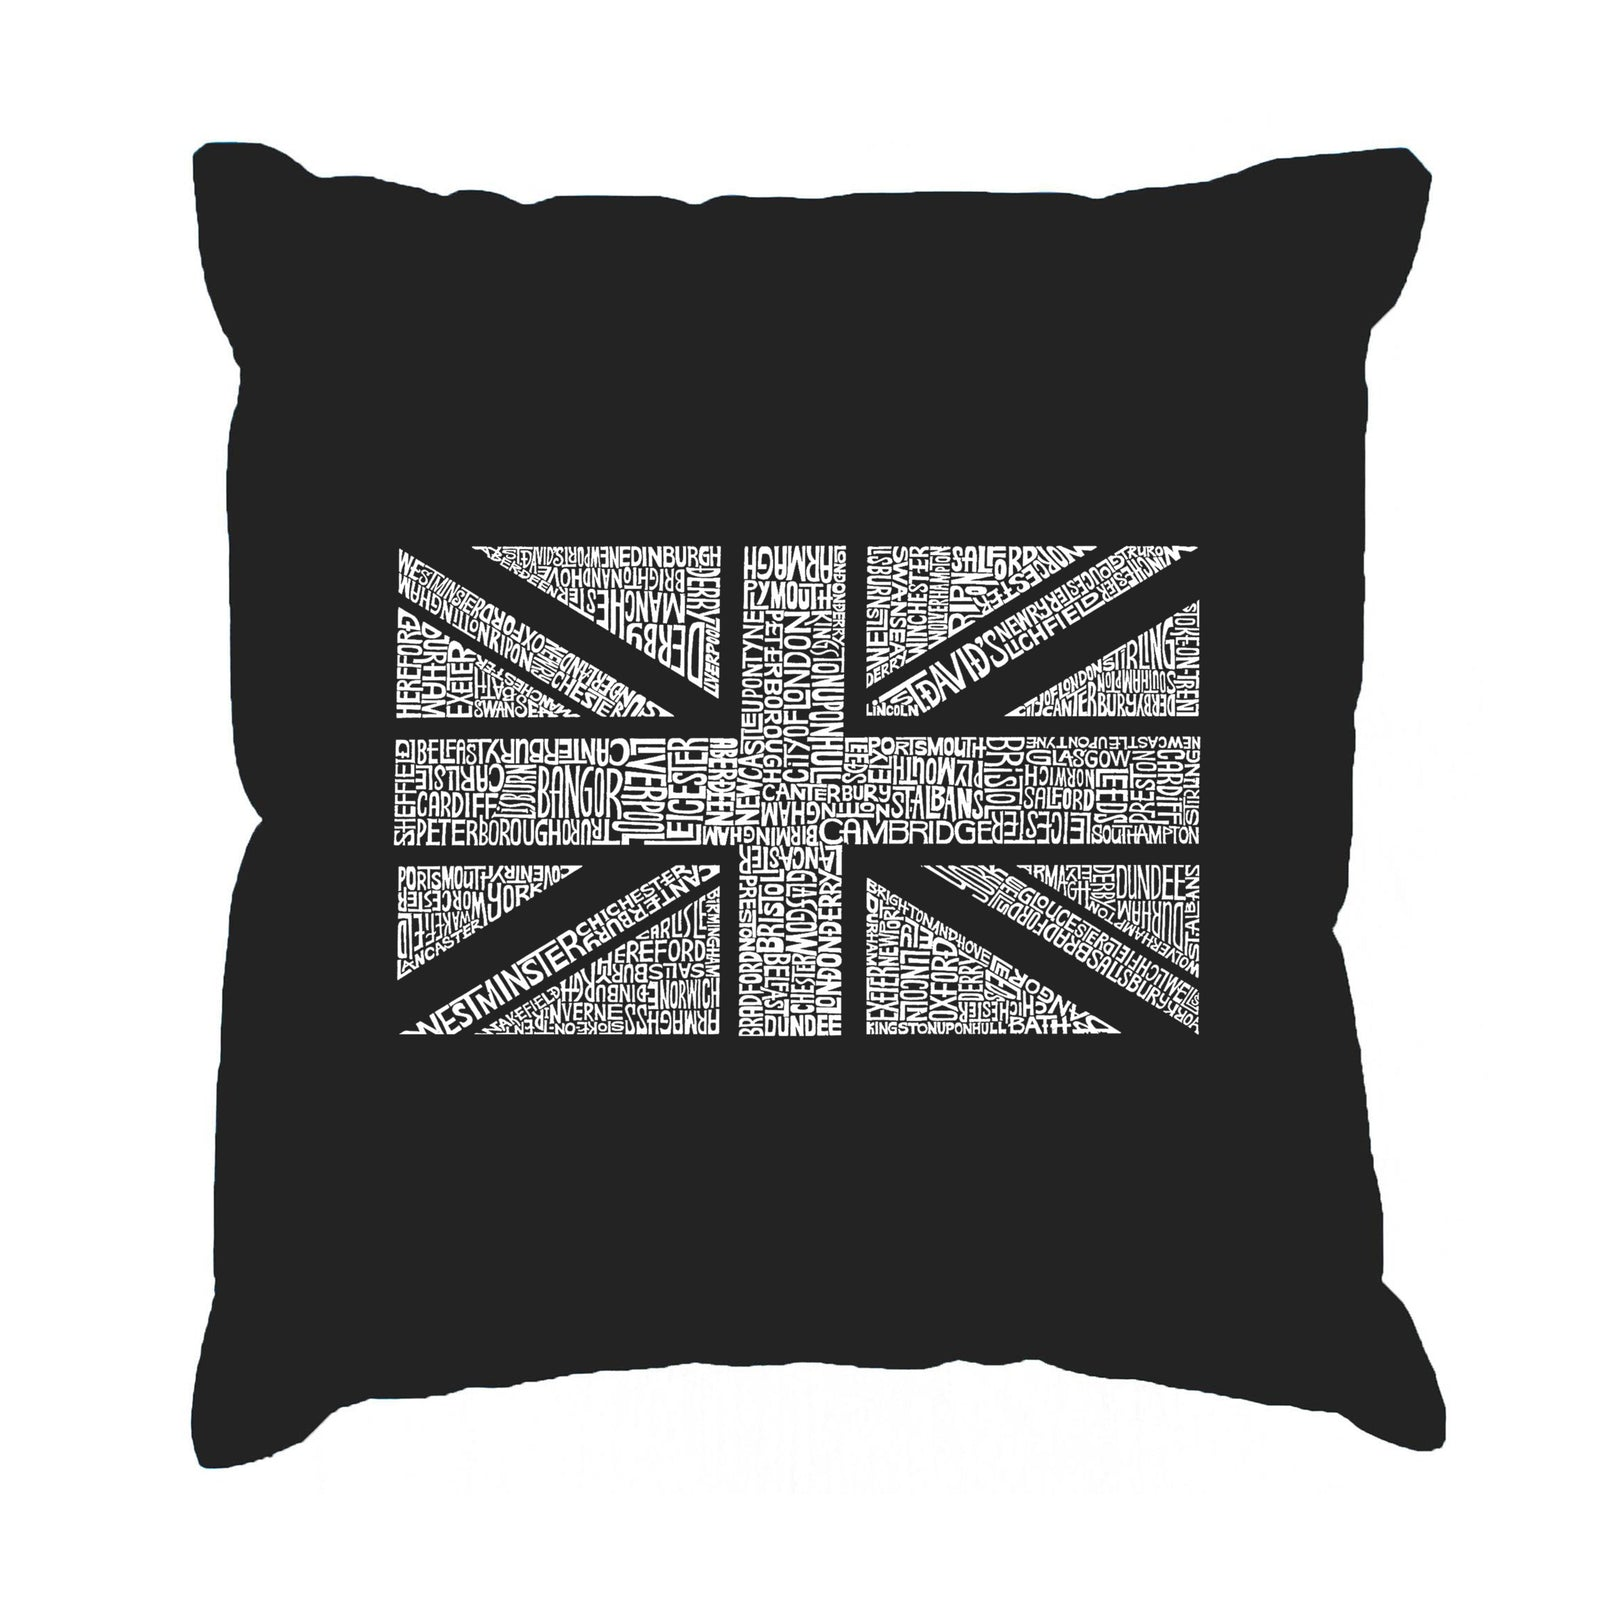 Throw Pillow Cover - UNION JACK